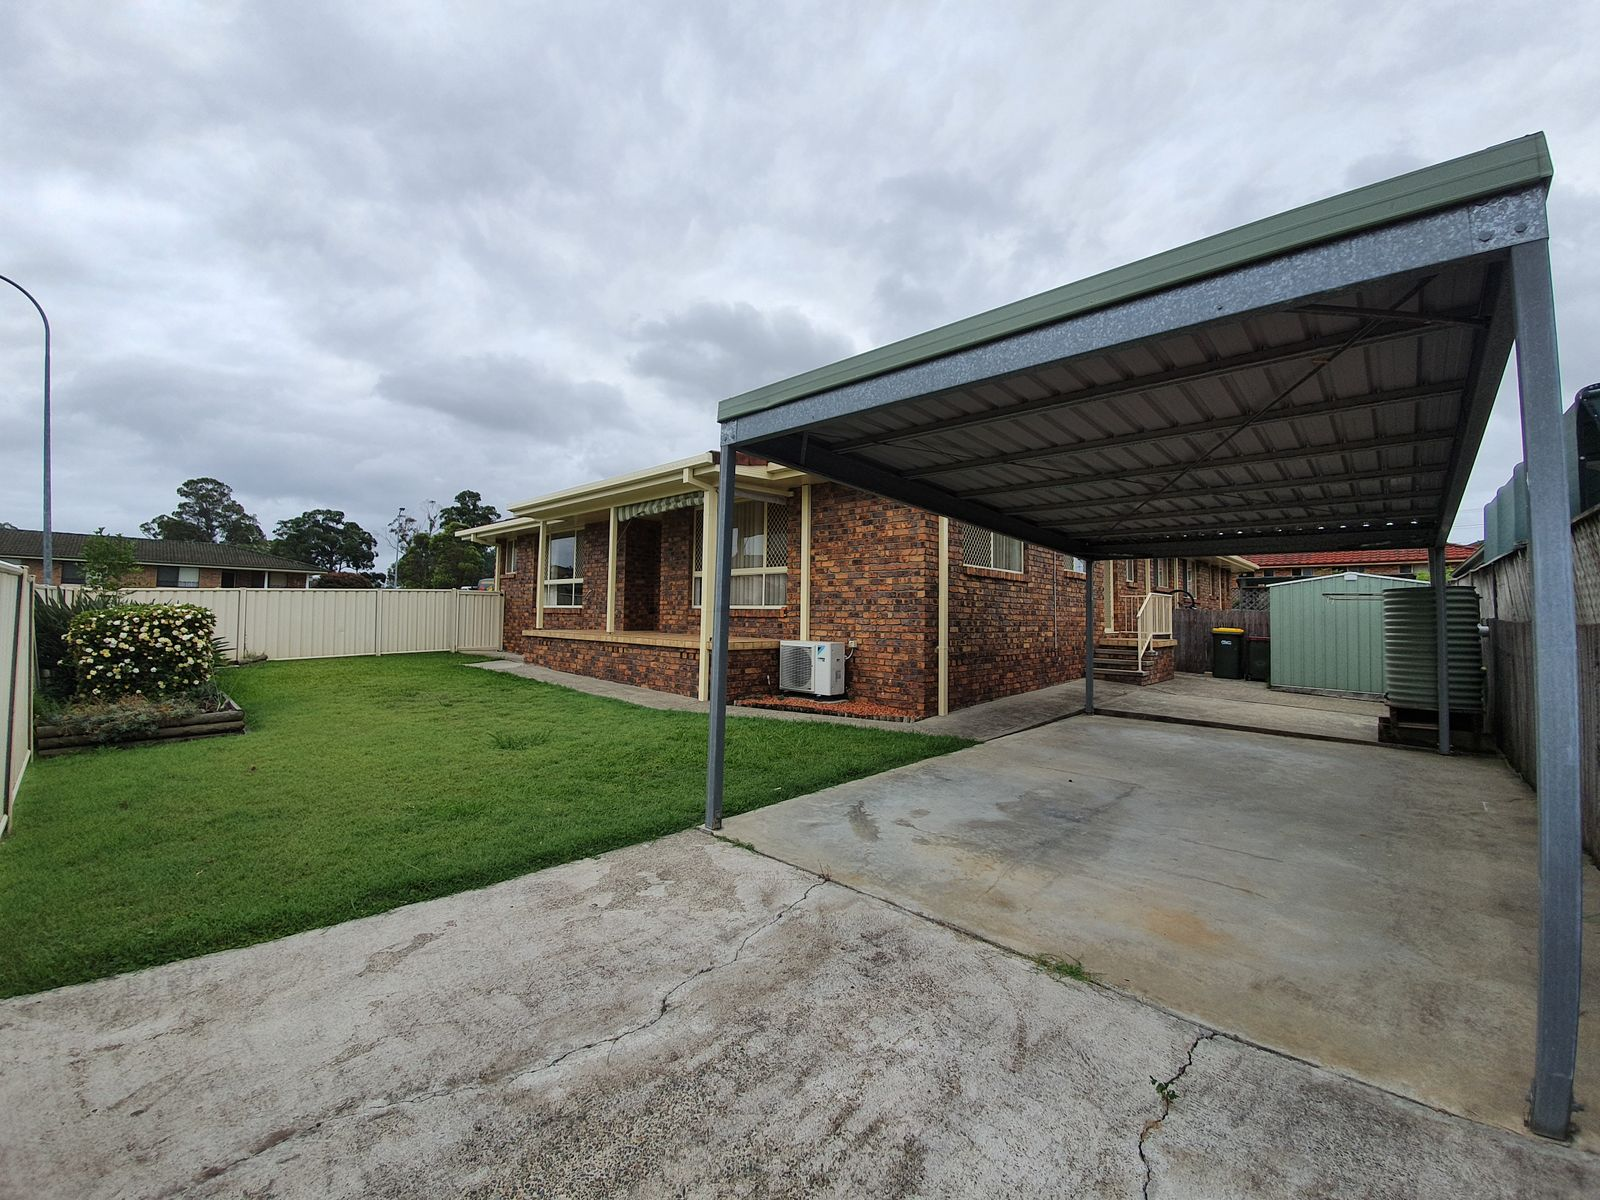 2/38 Illingari Circuit, Taree, NSW 2430